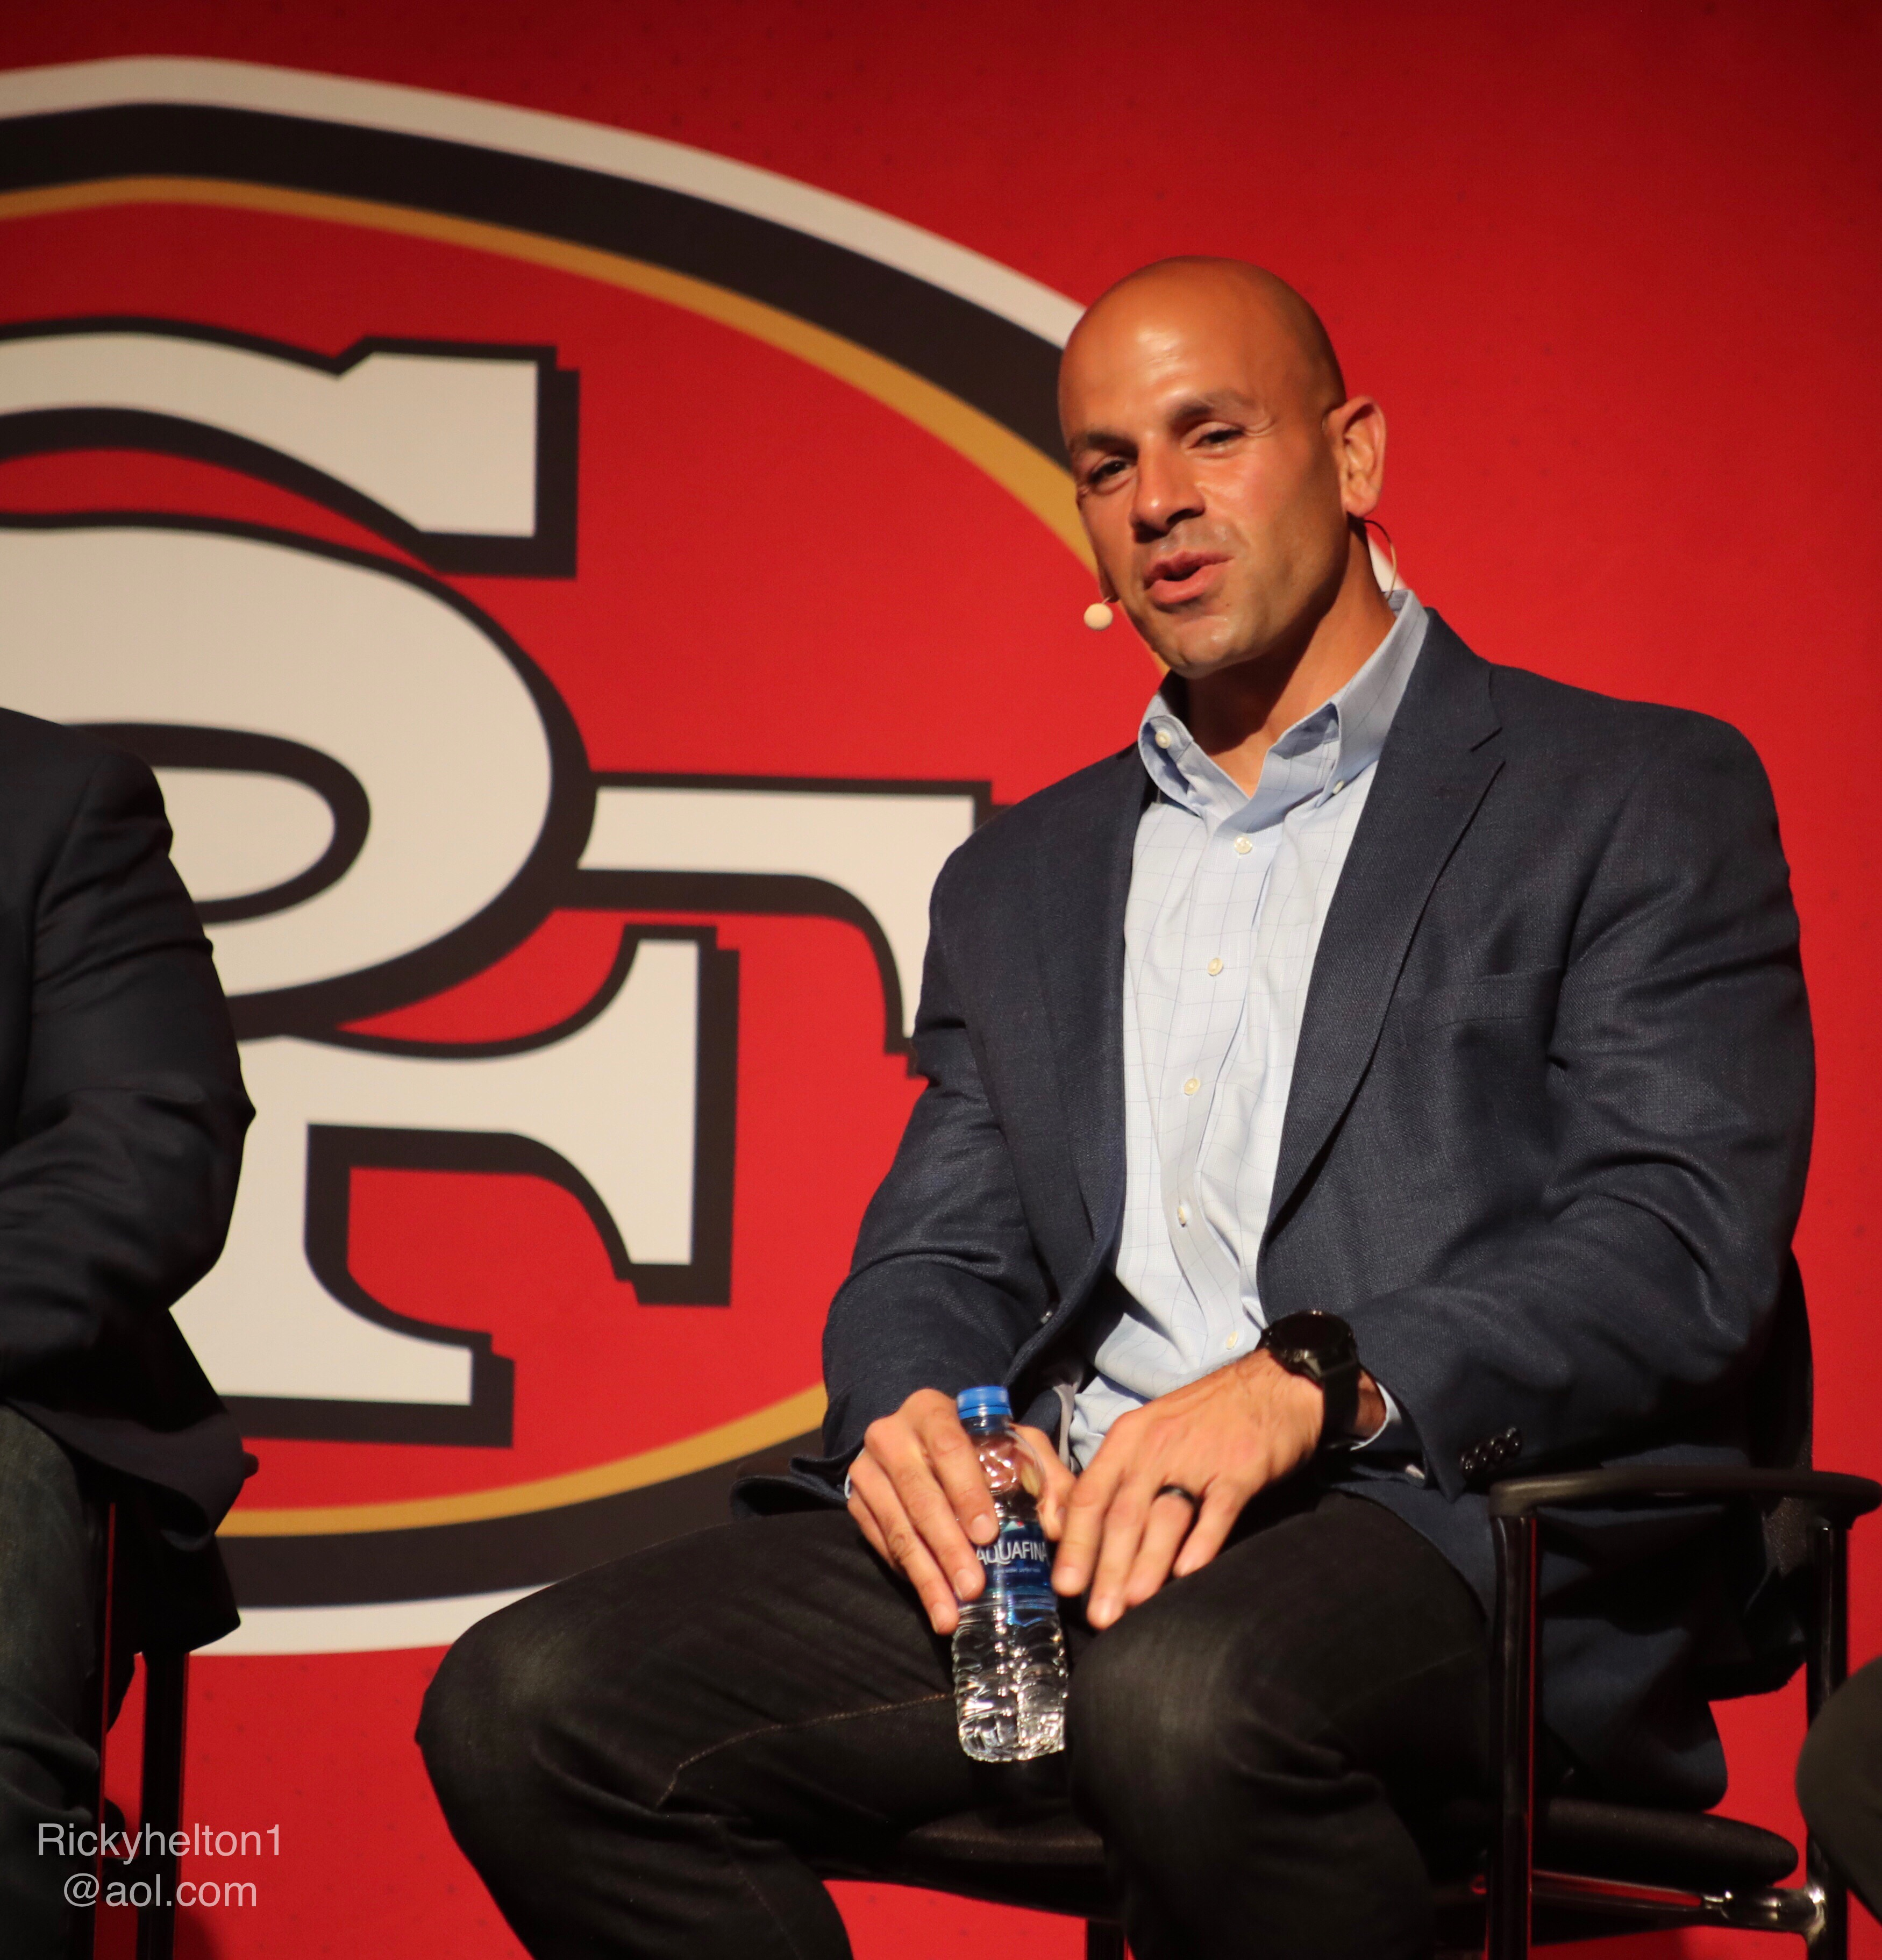 Photos From The 49ers 2018 State Of The Franchise Event